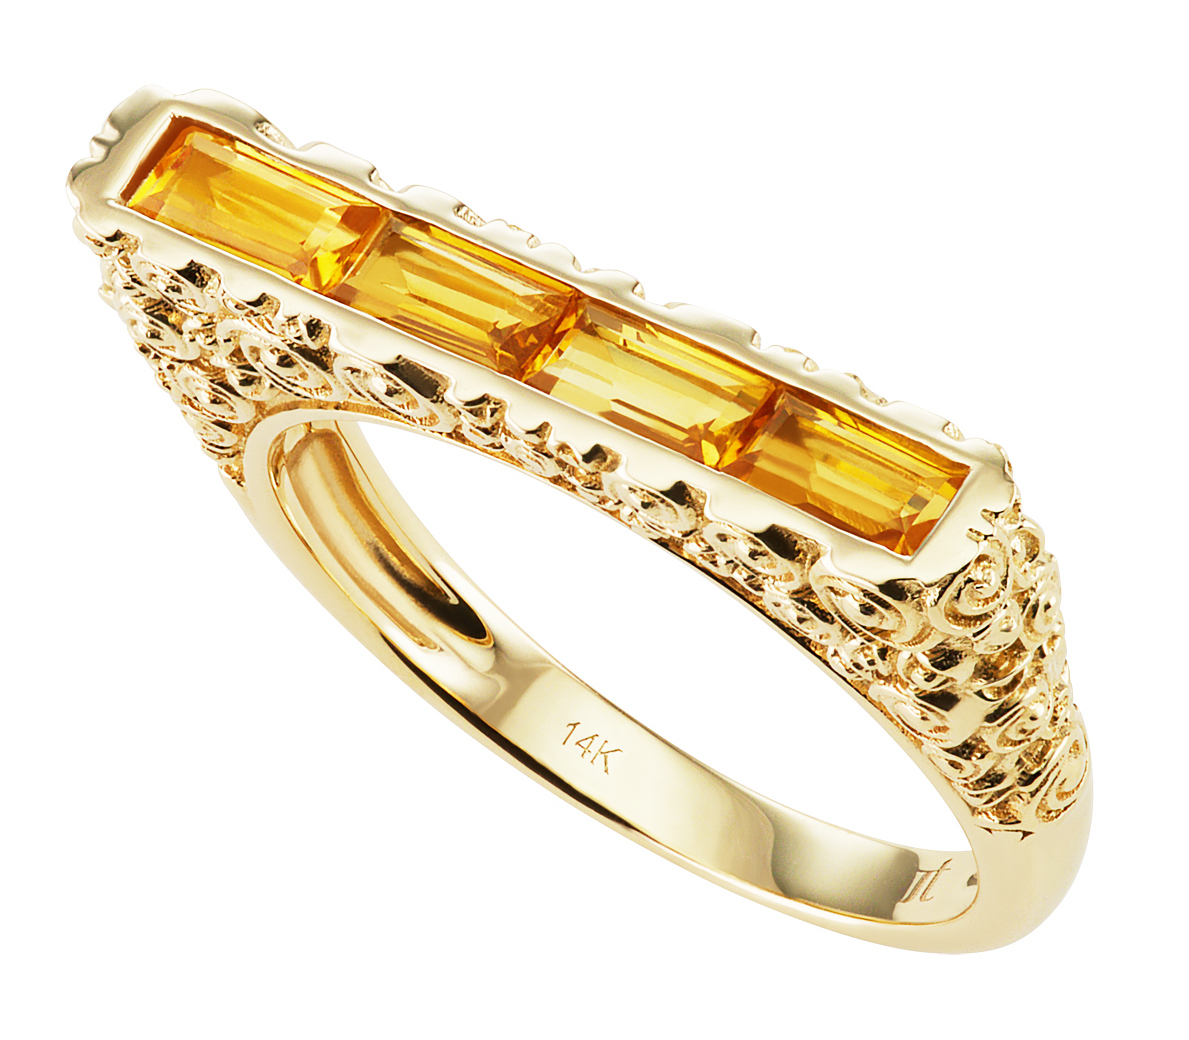 Jane Taylor Jewelry Rosebud skinny citrine bar ring | JCK On Your Market